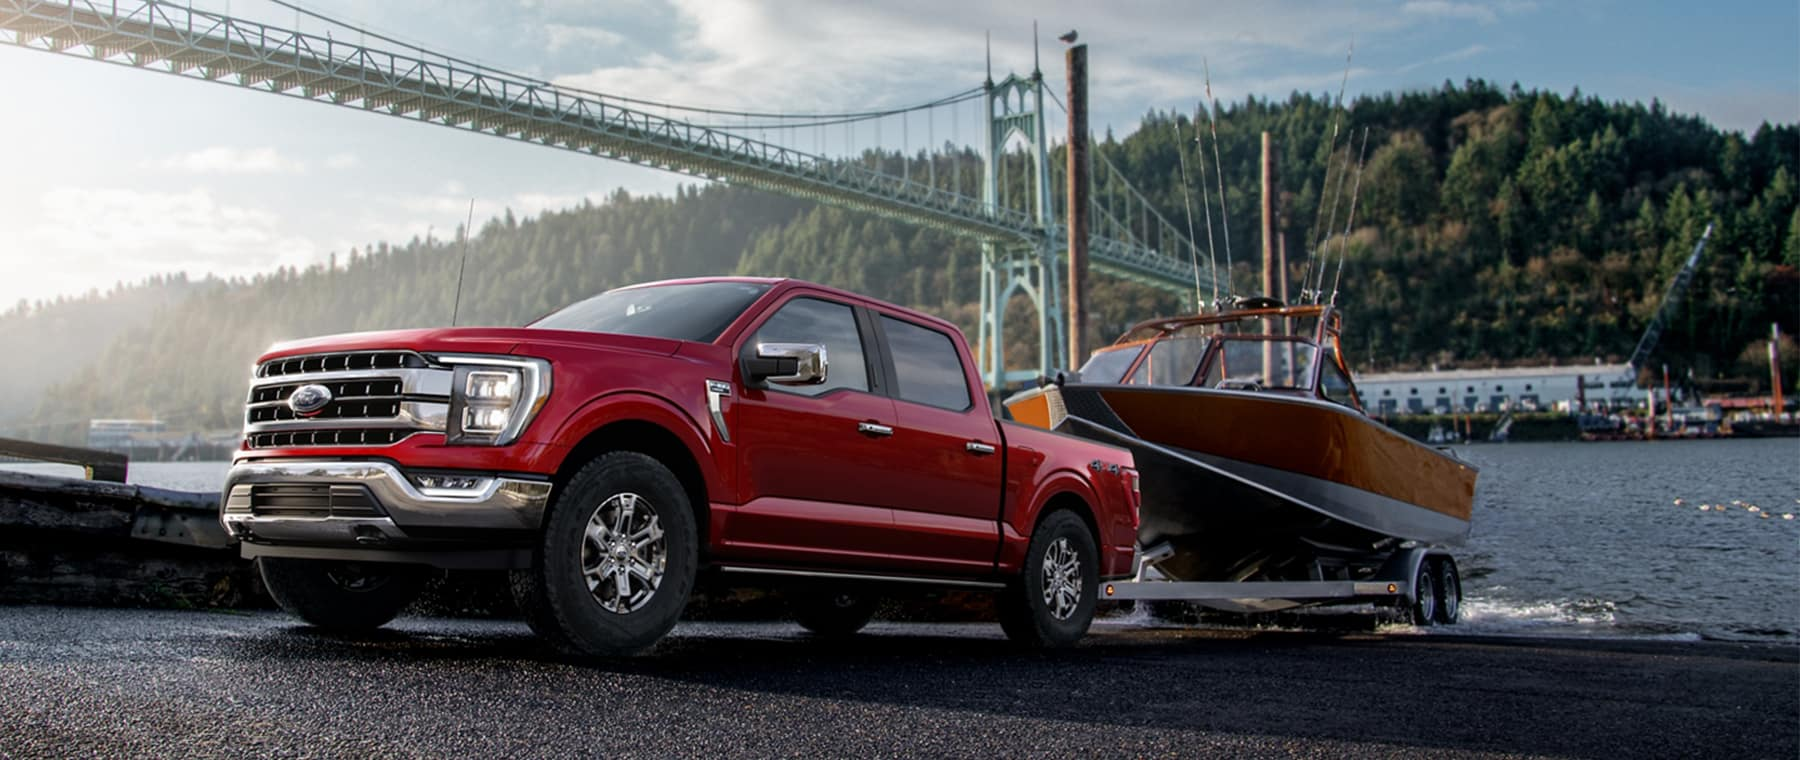 2021 Ford F150 towing boat